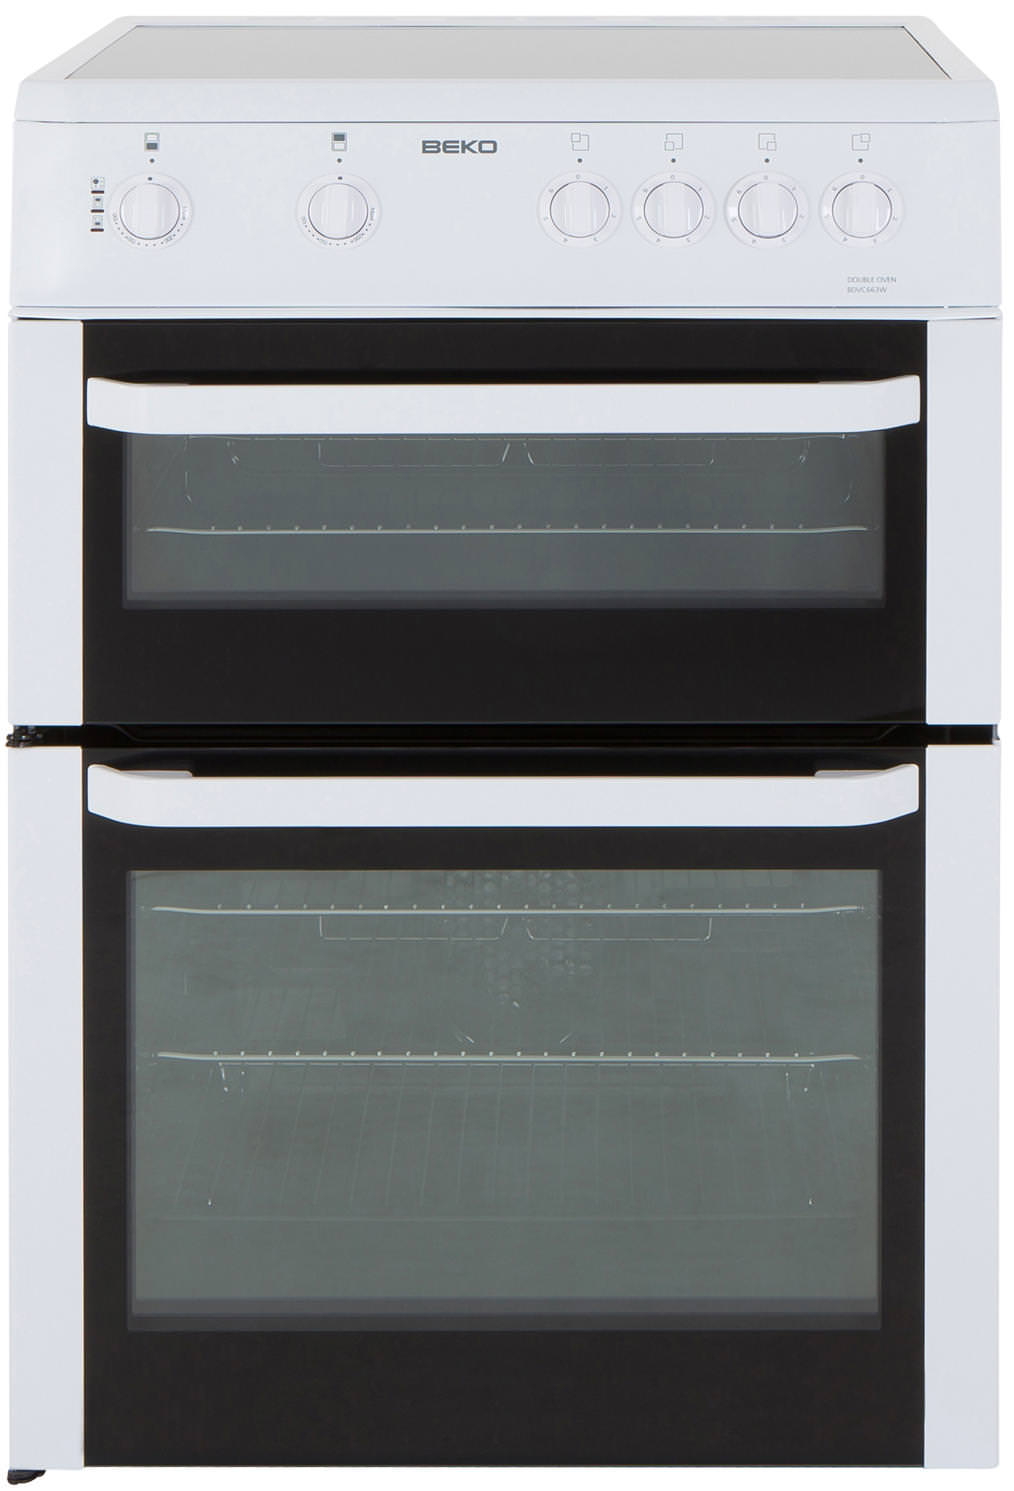 Image of BDVC663W 60cm Electric Double Oven Cooker